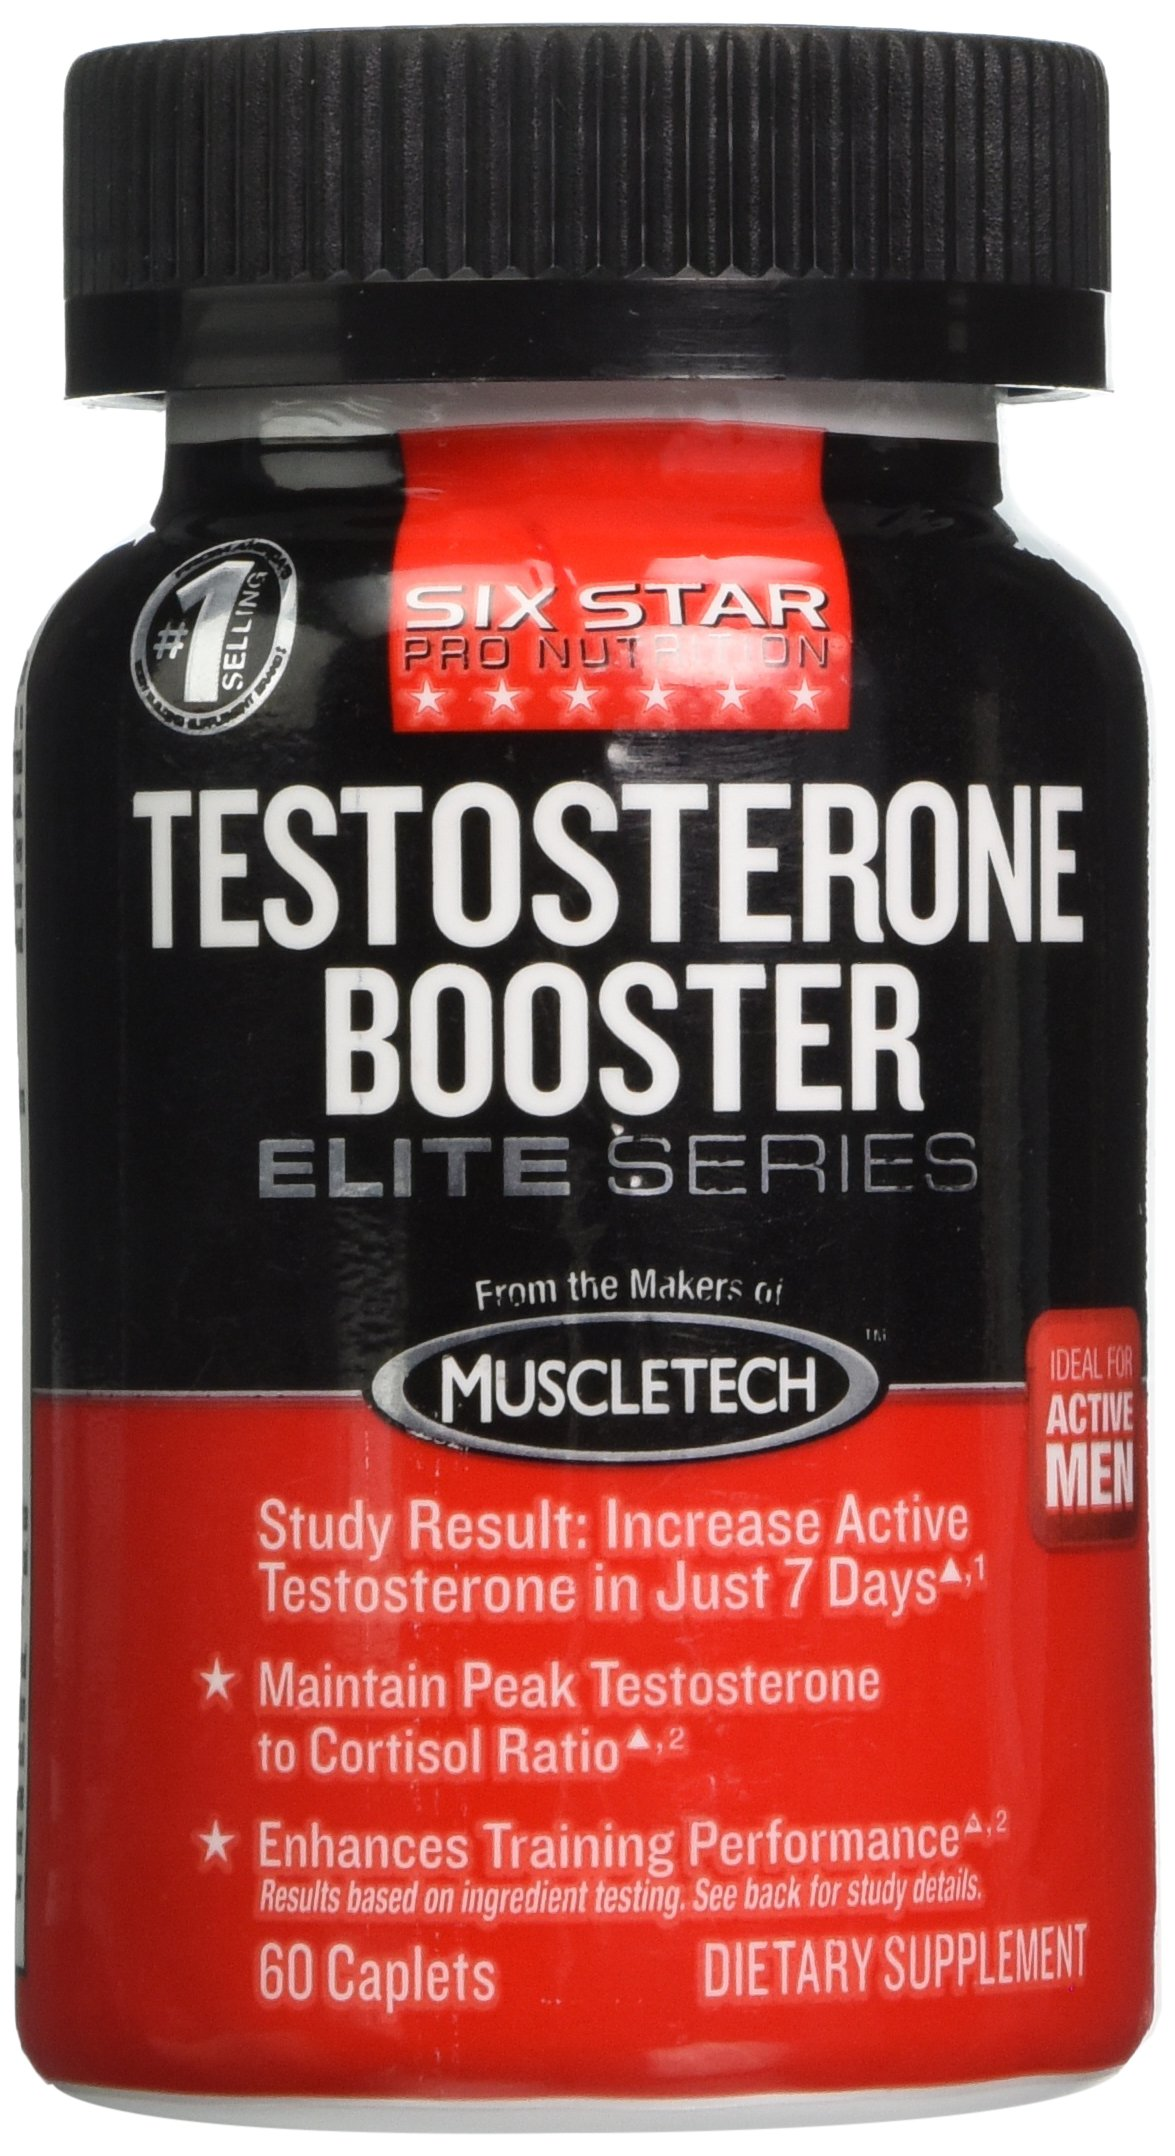 Six Star Professional Strength Testosterone Booster, Caplets, 60 (Pack of 2)